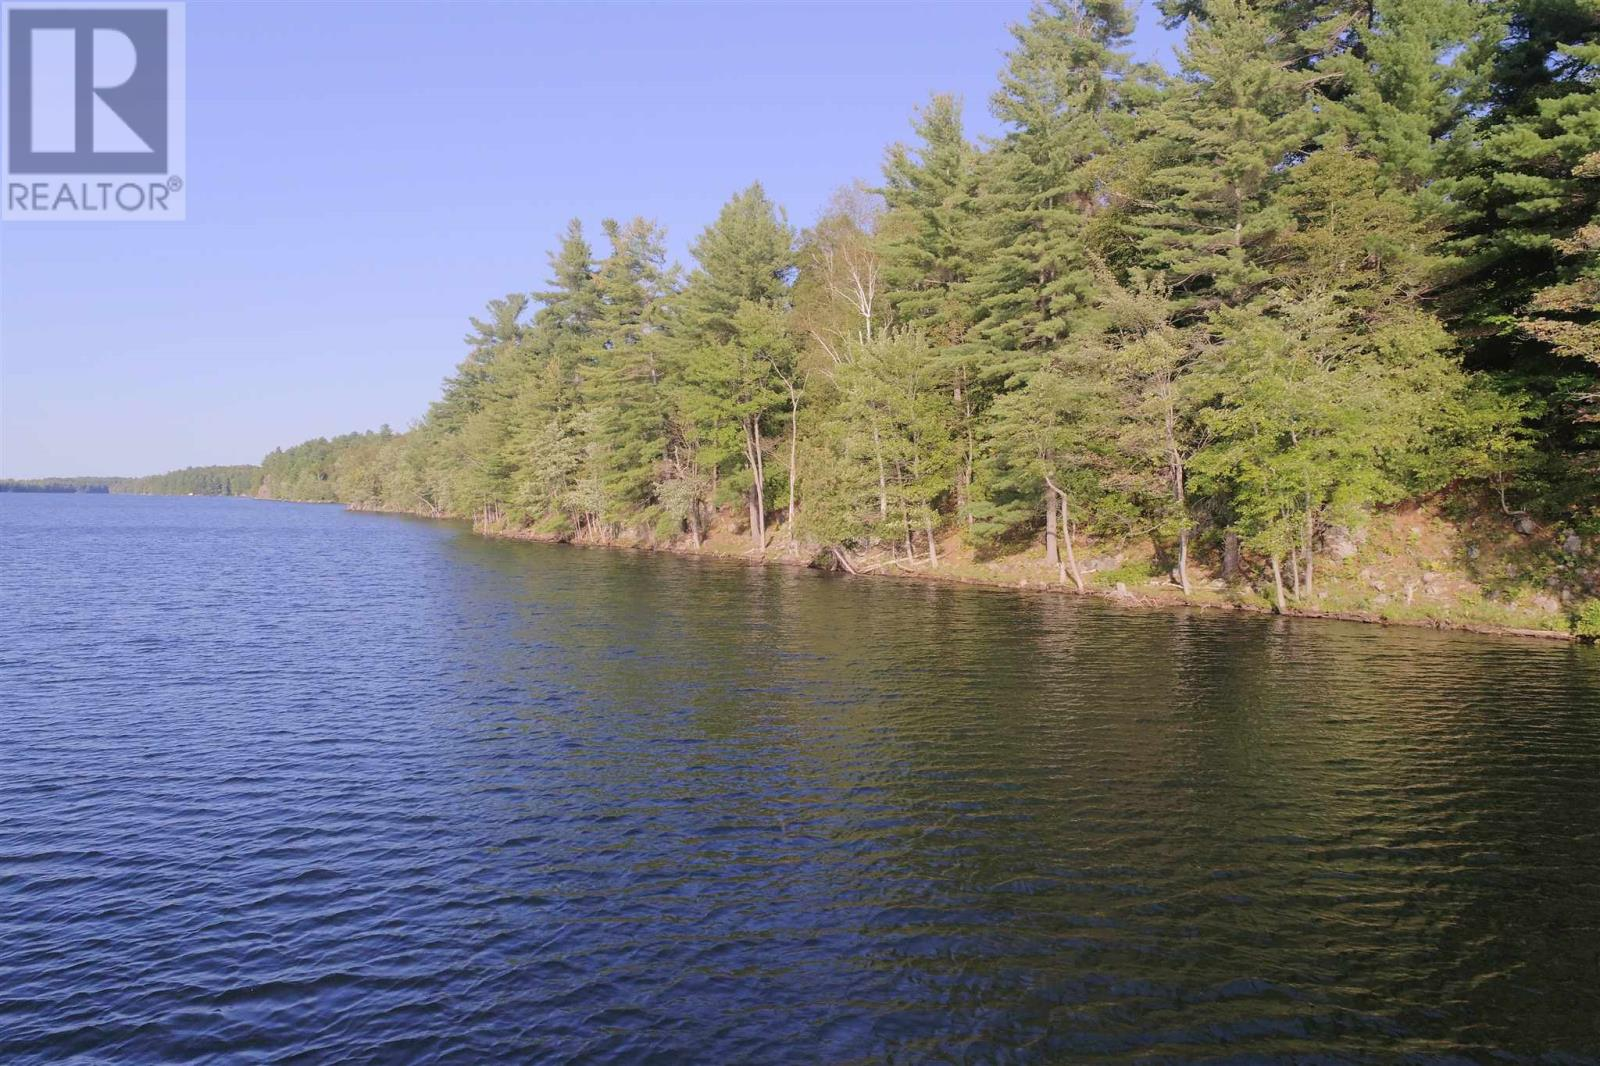 residential property for For sale at Out Of Area, Ontario